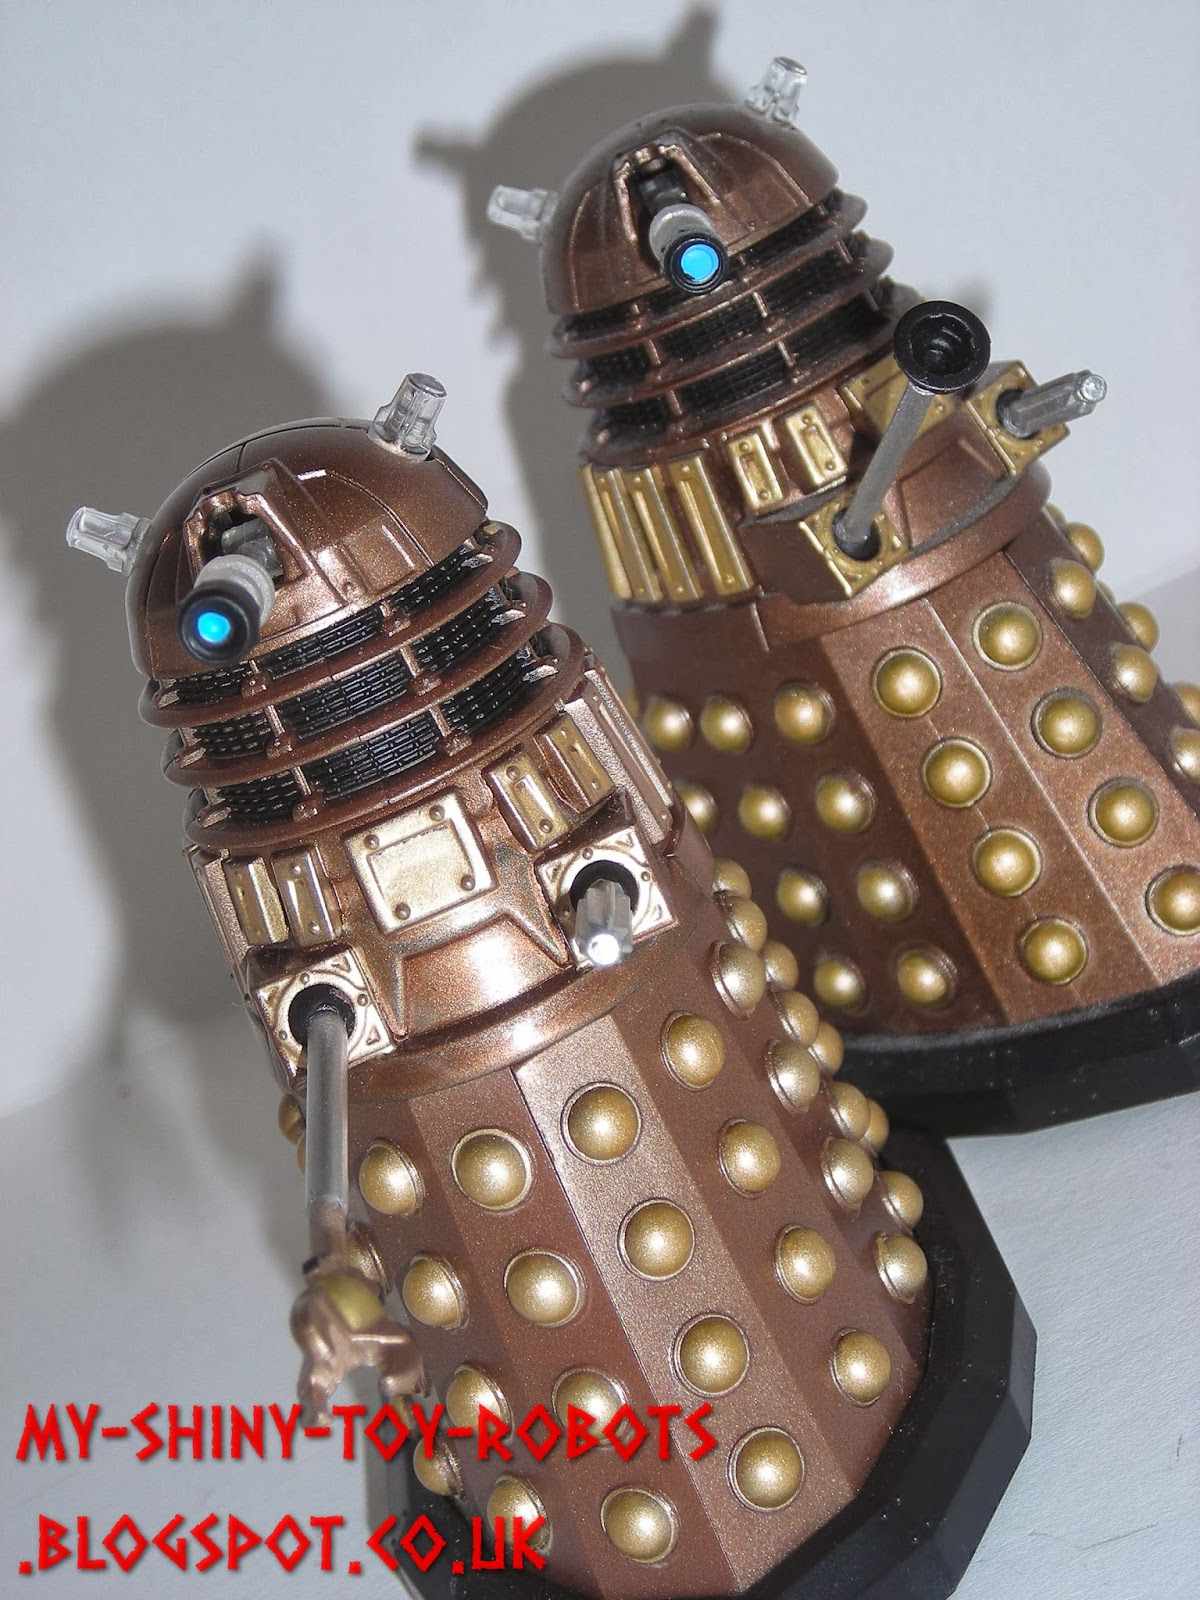 Daleks on the assault!